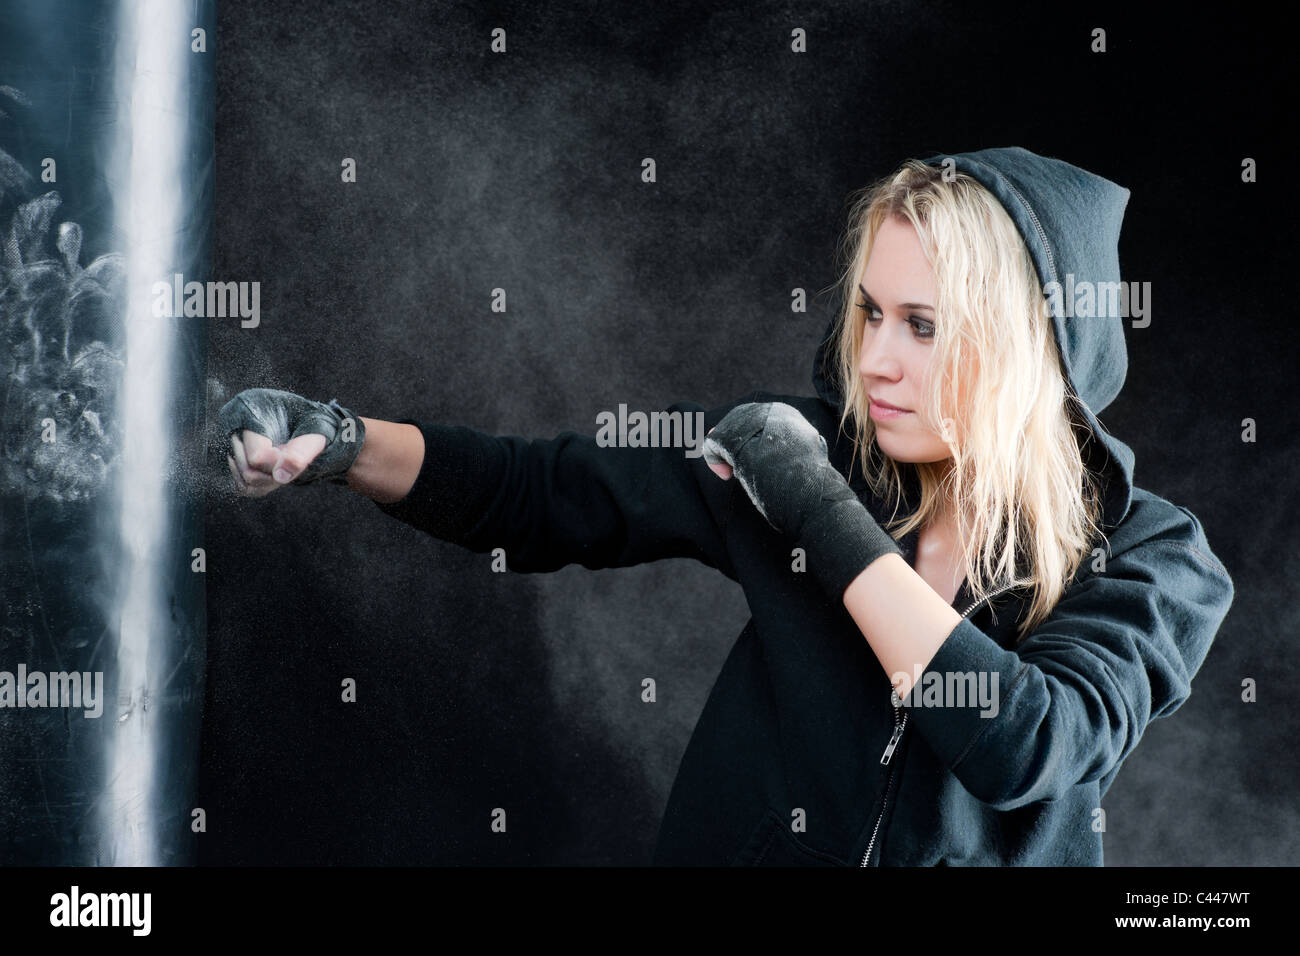 Blond boxing woman in black training with punching bag Stock Photo